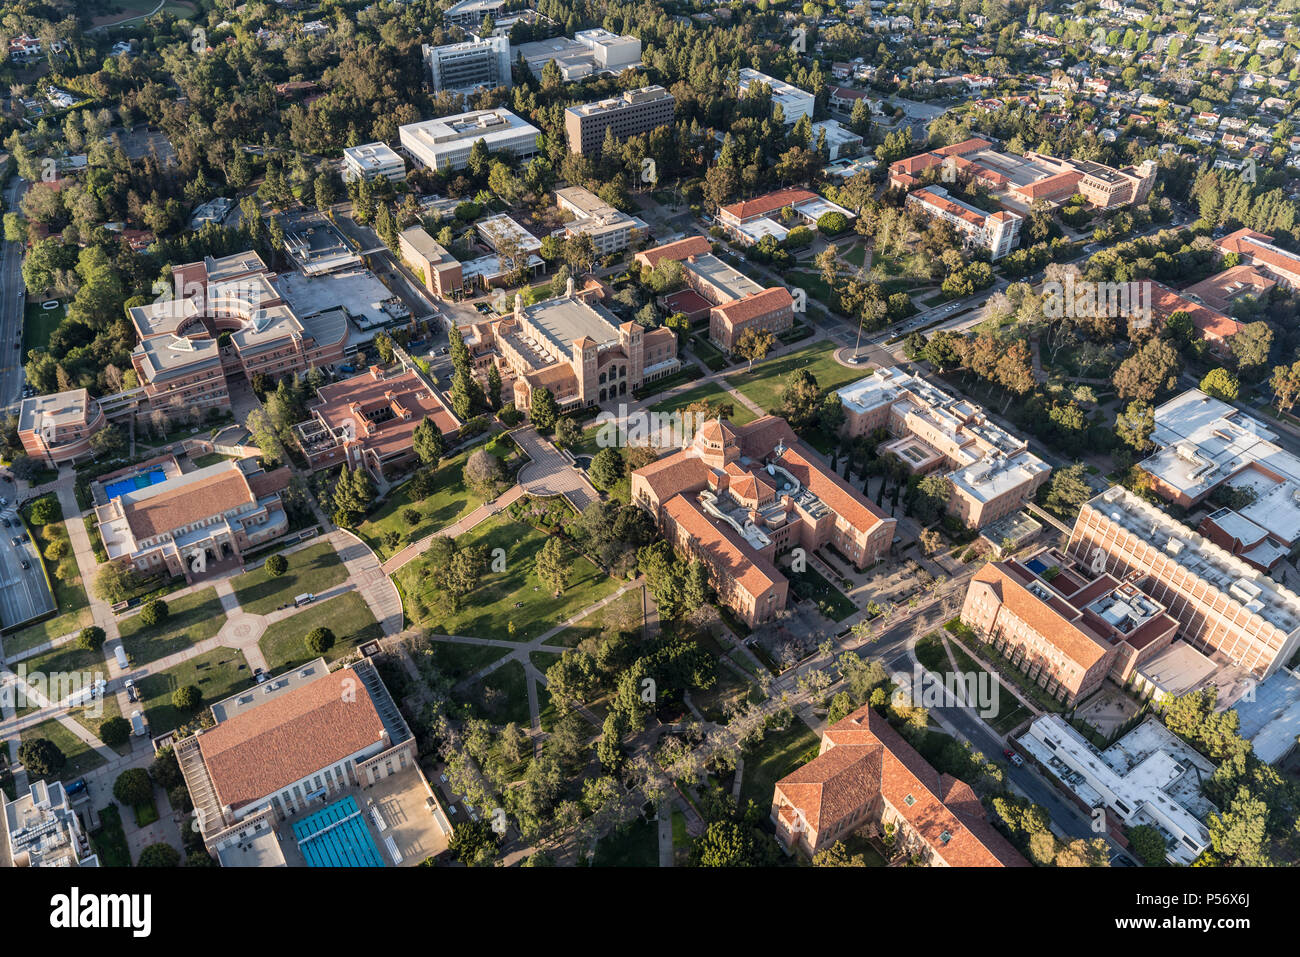 Los Angeles, California, USA - April 18, 2018:  Aerial view of buildings on the UCLA campus near Westwood. - Stock Image